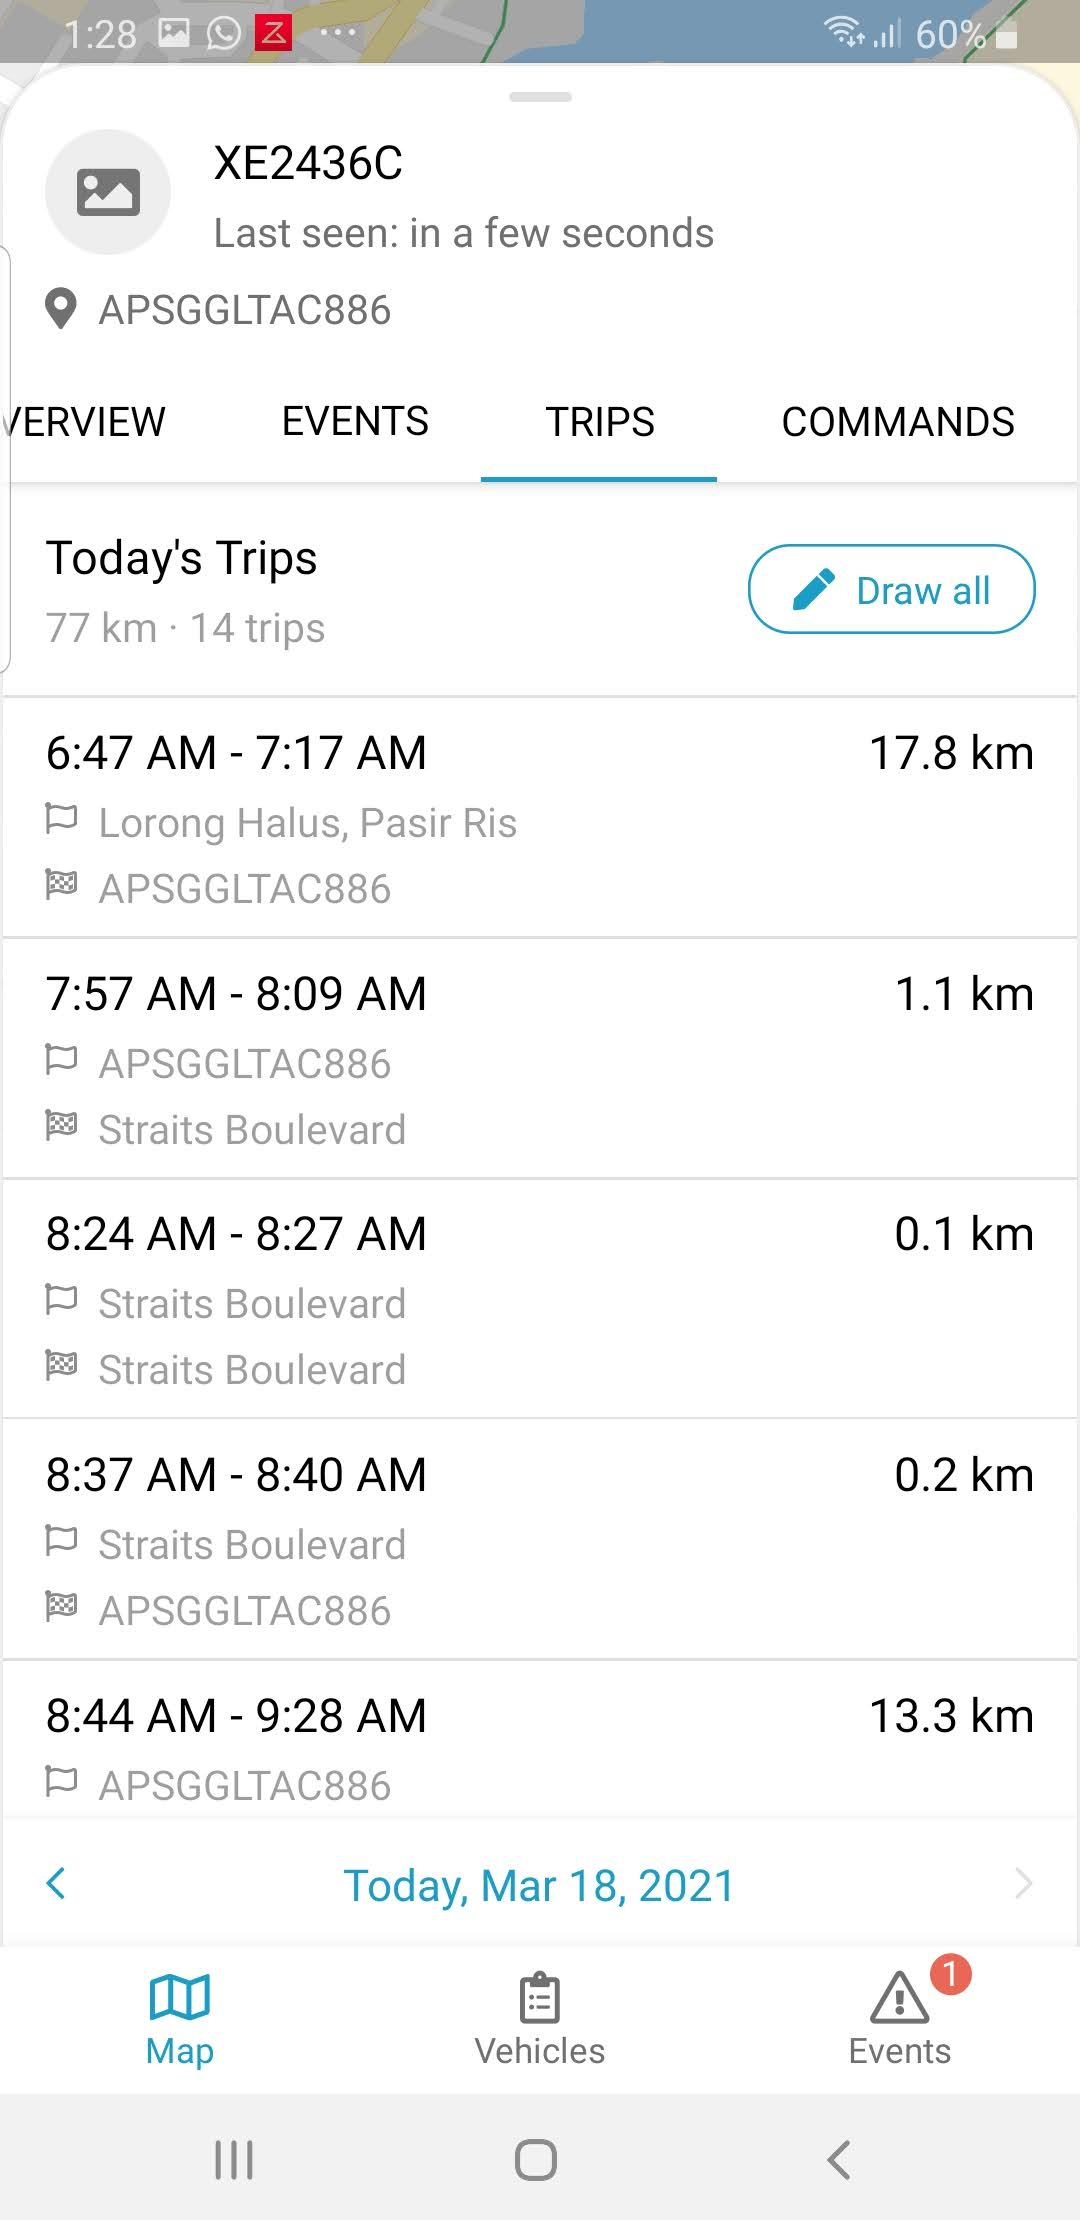 FleetManager Mobile App showing trip records of vehicle